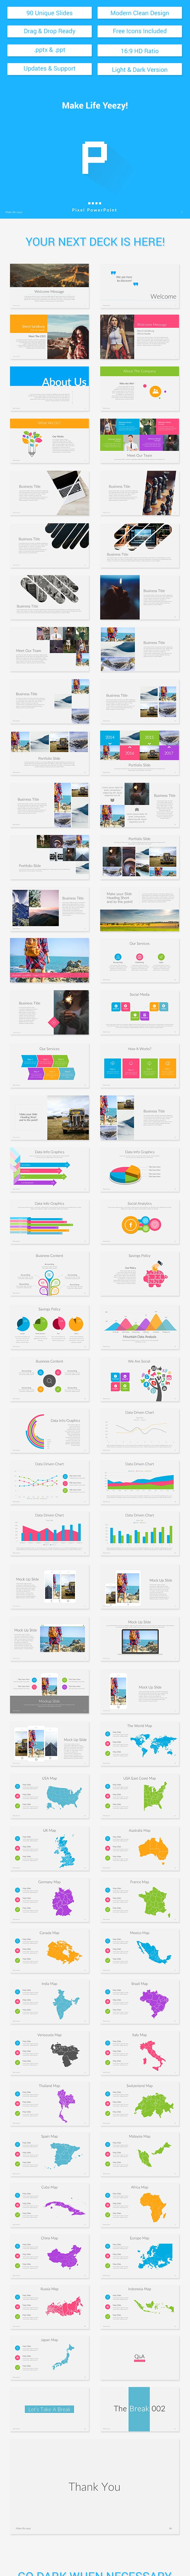 pixel powerpoint by reentim graphicriver